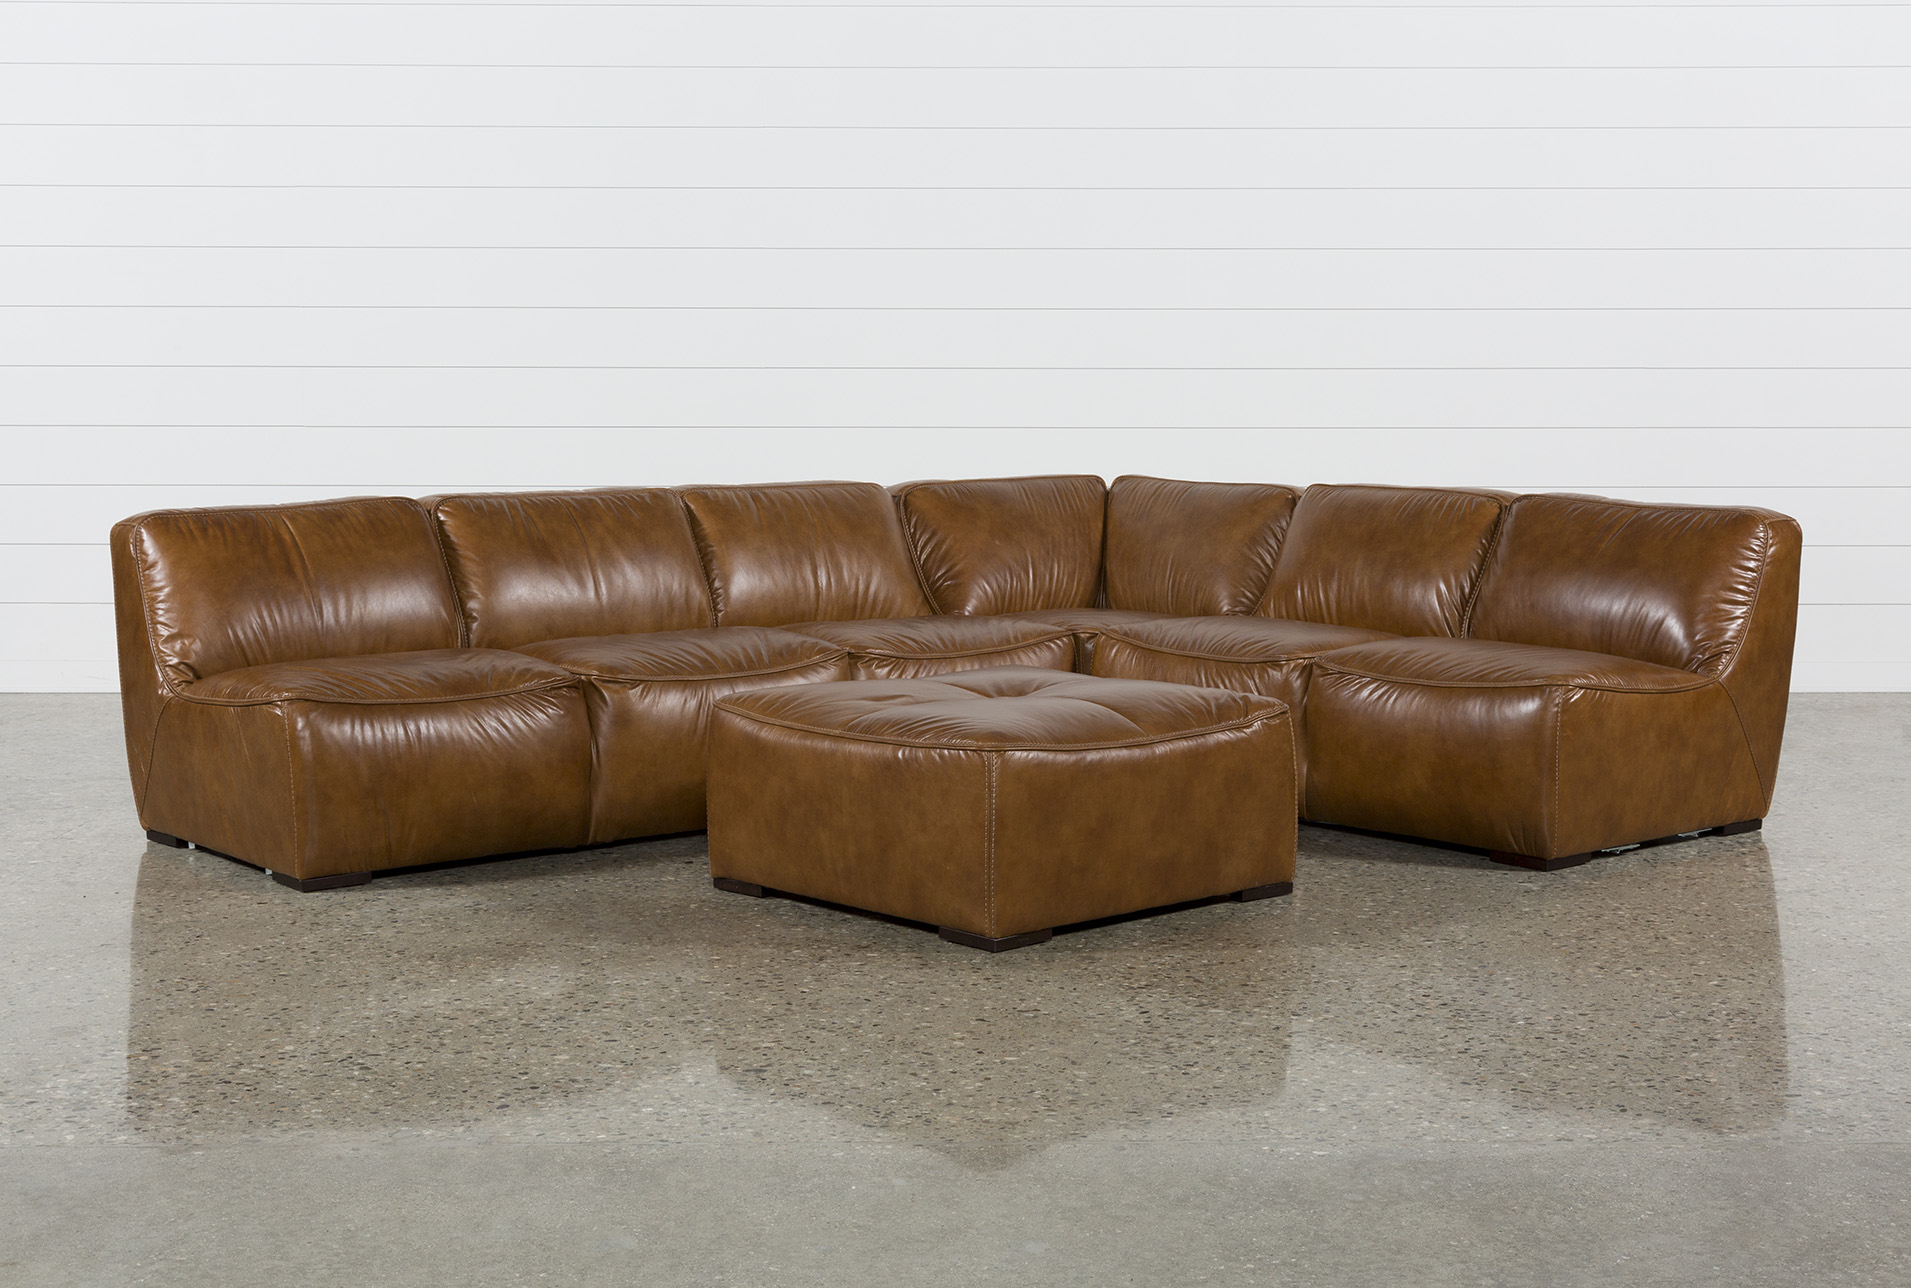 Burton Leather 3 Piece Sectional W/Ottoman (Qty: 1) Has Been Successfully  Added To Your Cart.